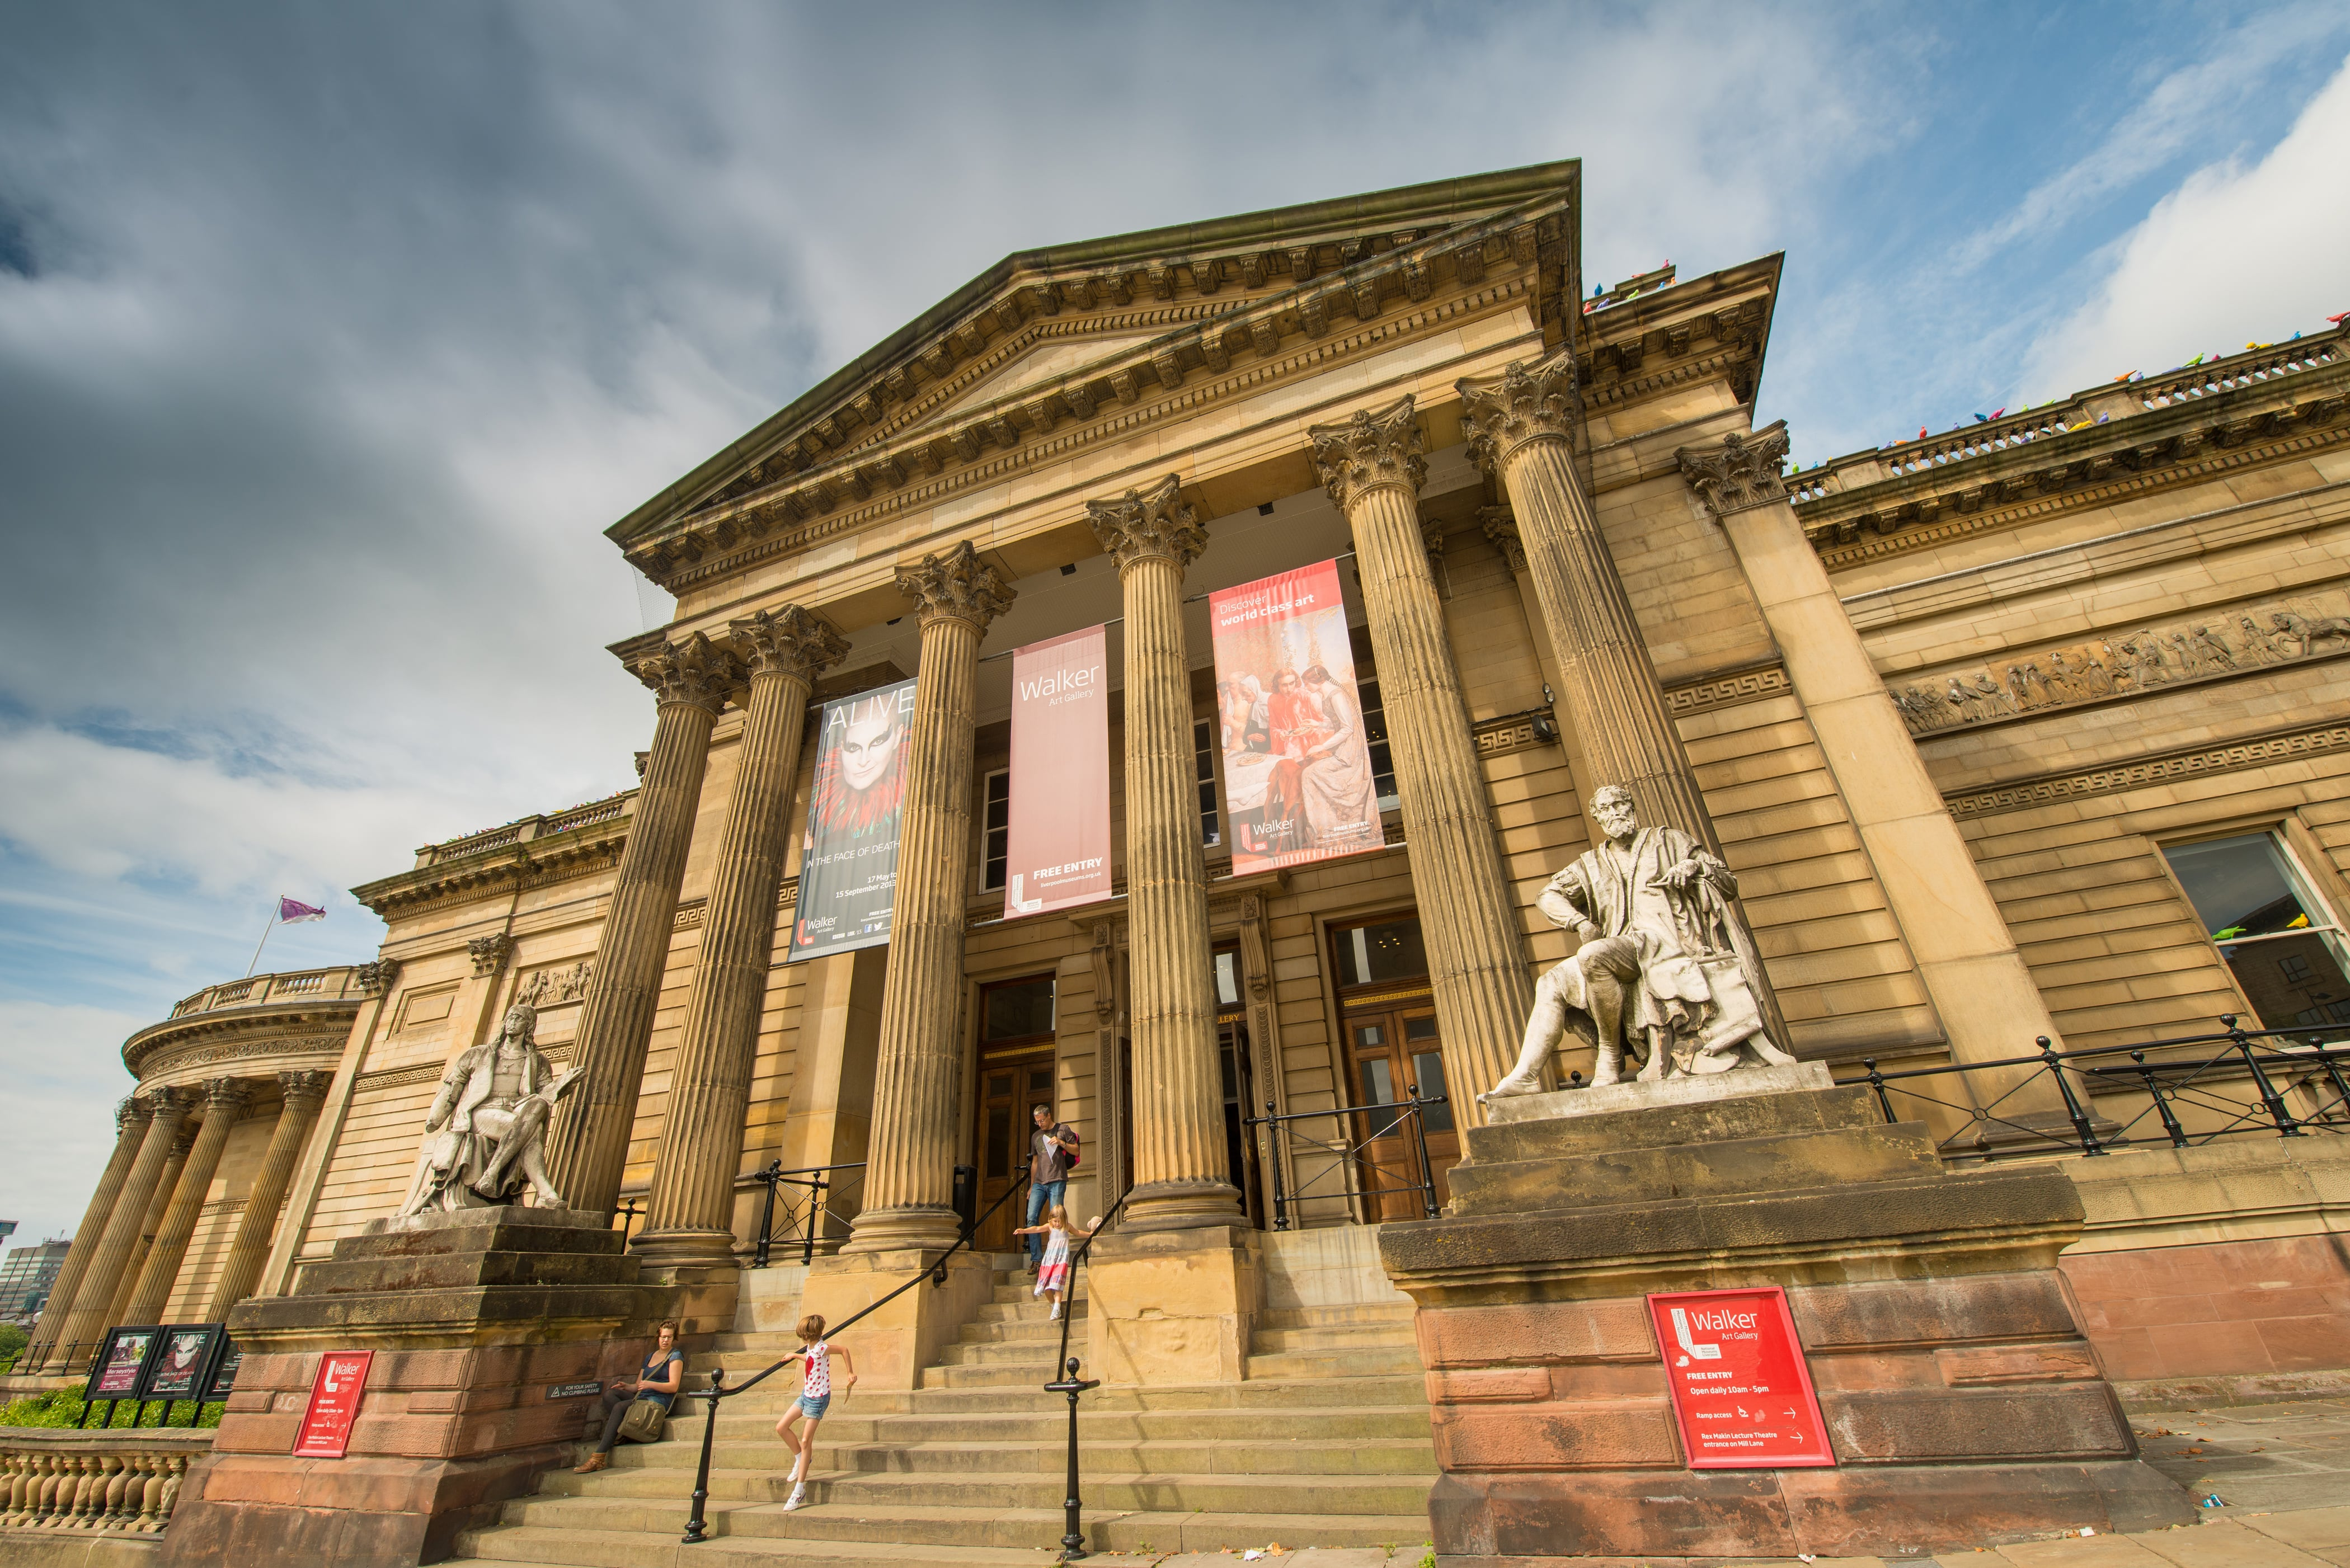 5. Walker Art Gallery, Liverpool - Free entry to all